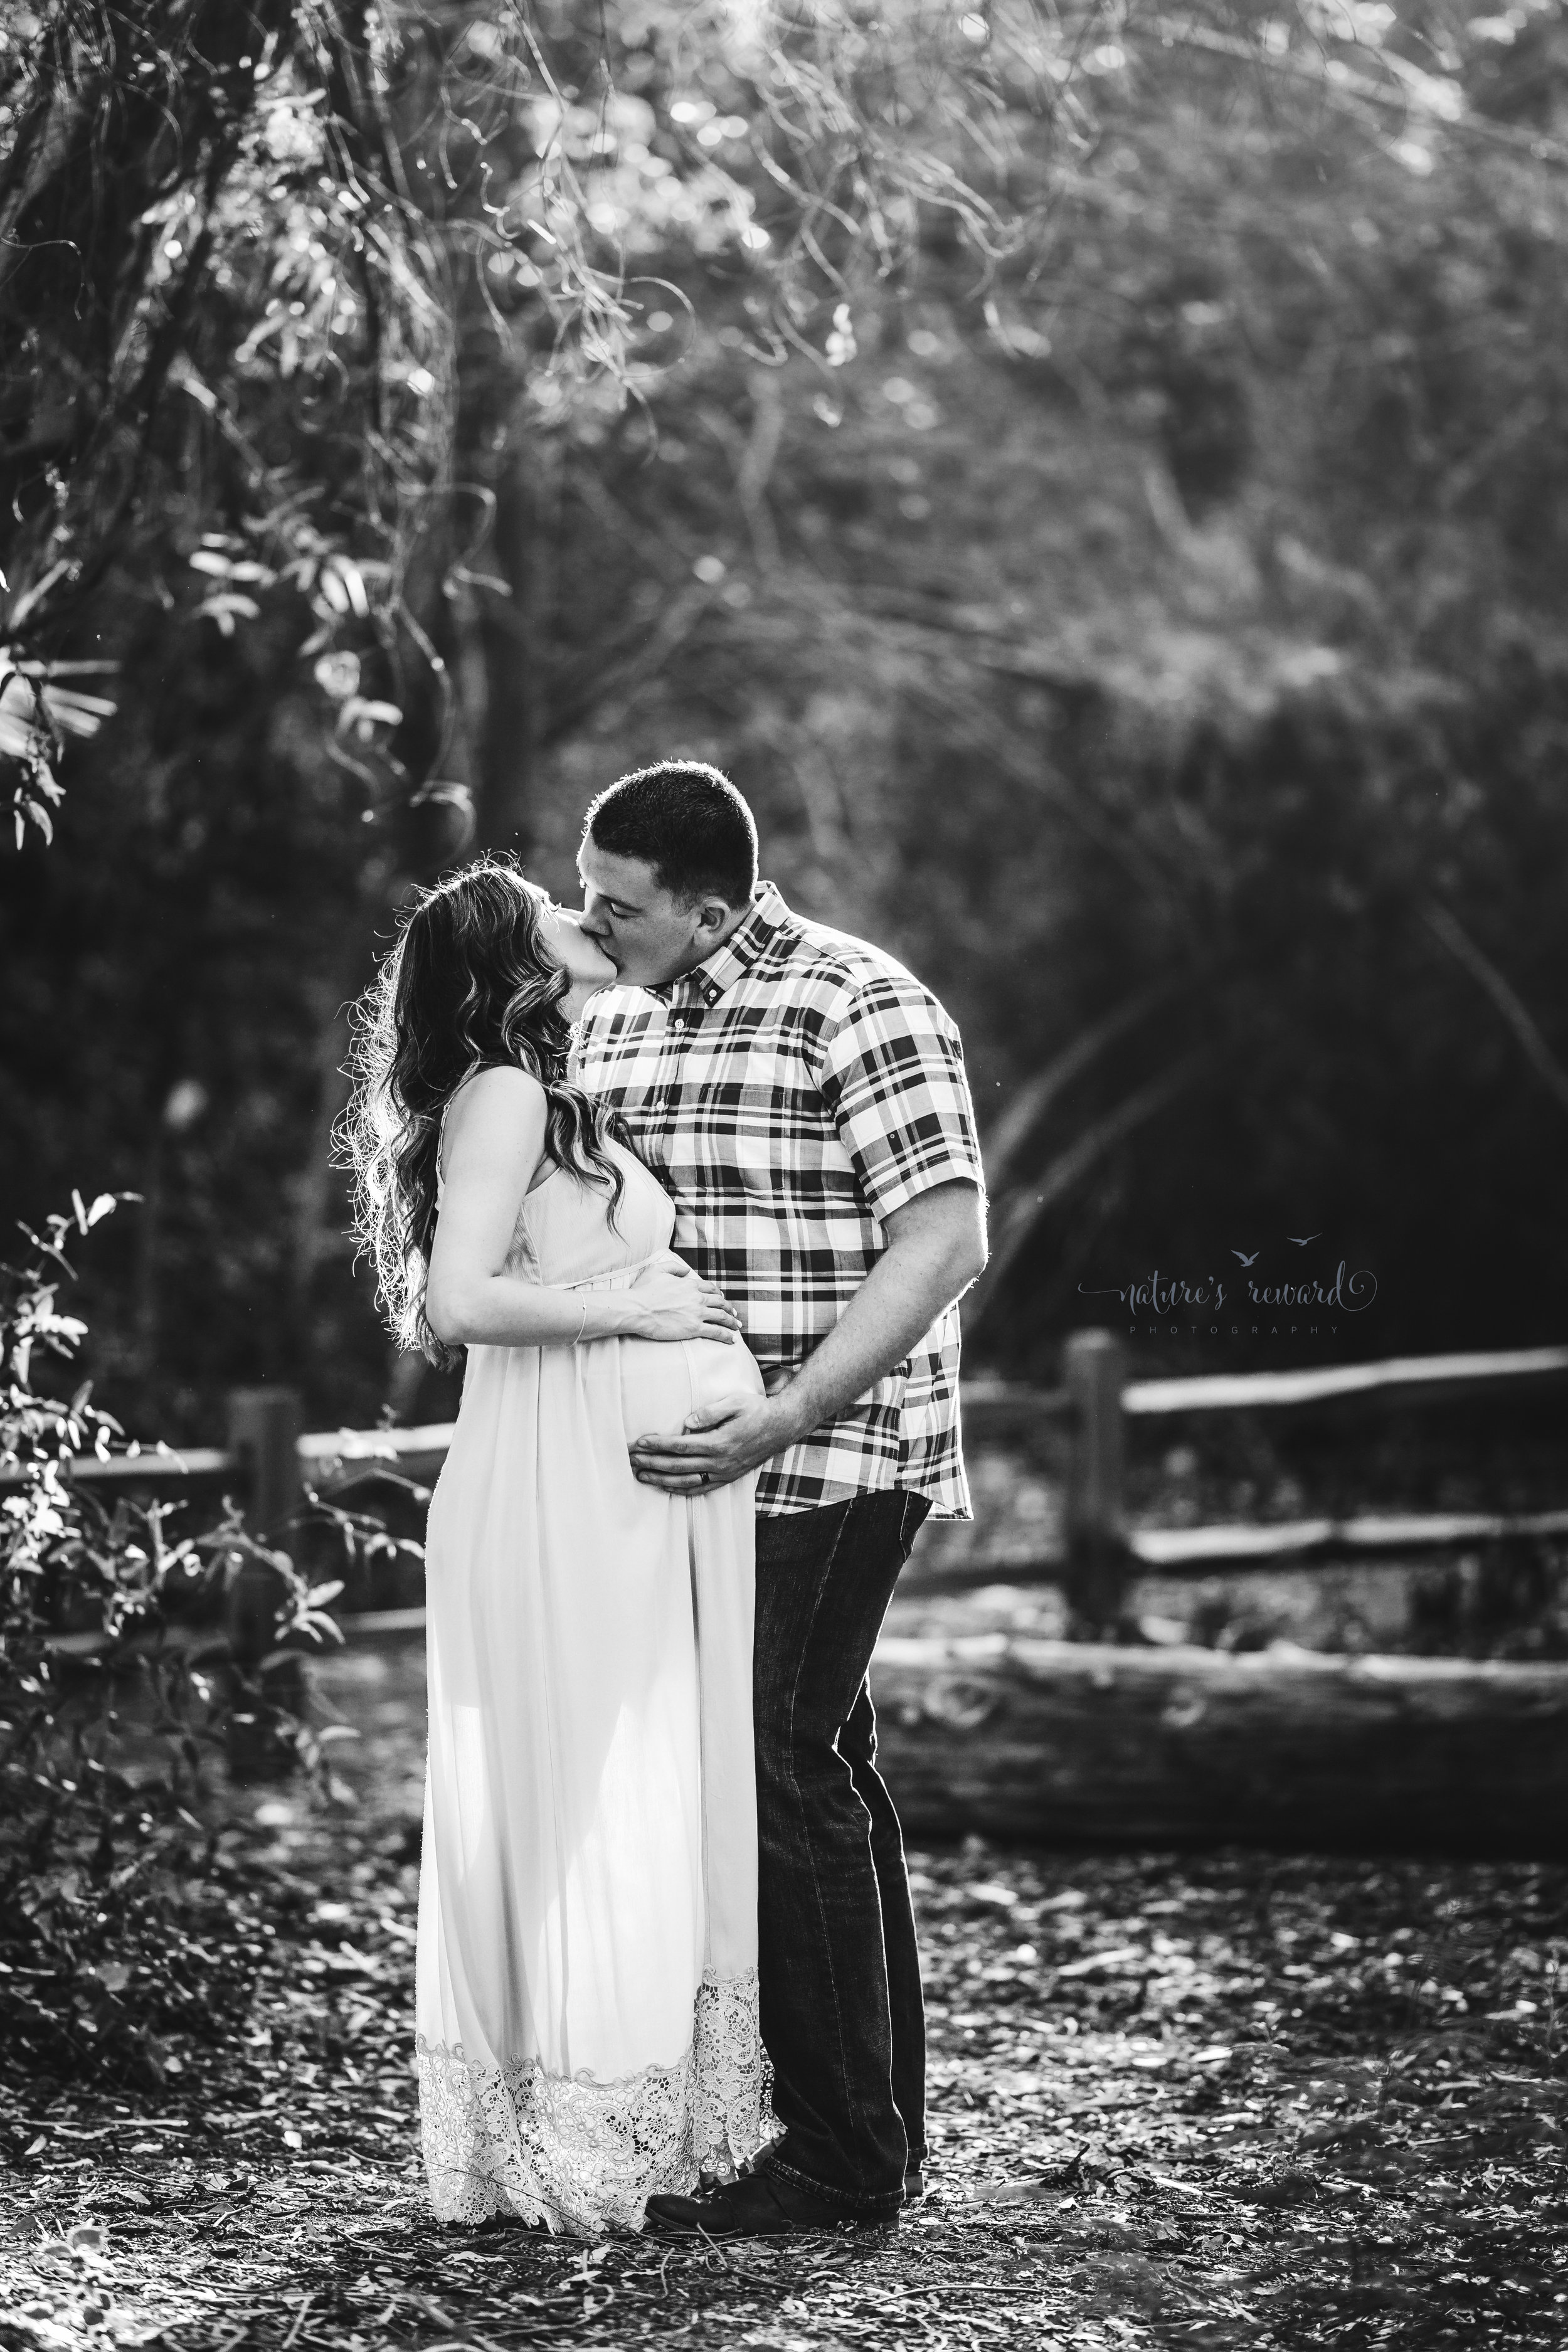 Beautiful expecting mother in a blue maternity gown with her husband in jeans and a blue plaid button down shirt in beautiful light, embrace,in a park setting in this black and white maternity portrait taken by Nature's Reward Photography.